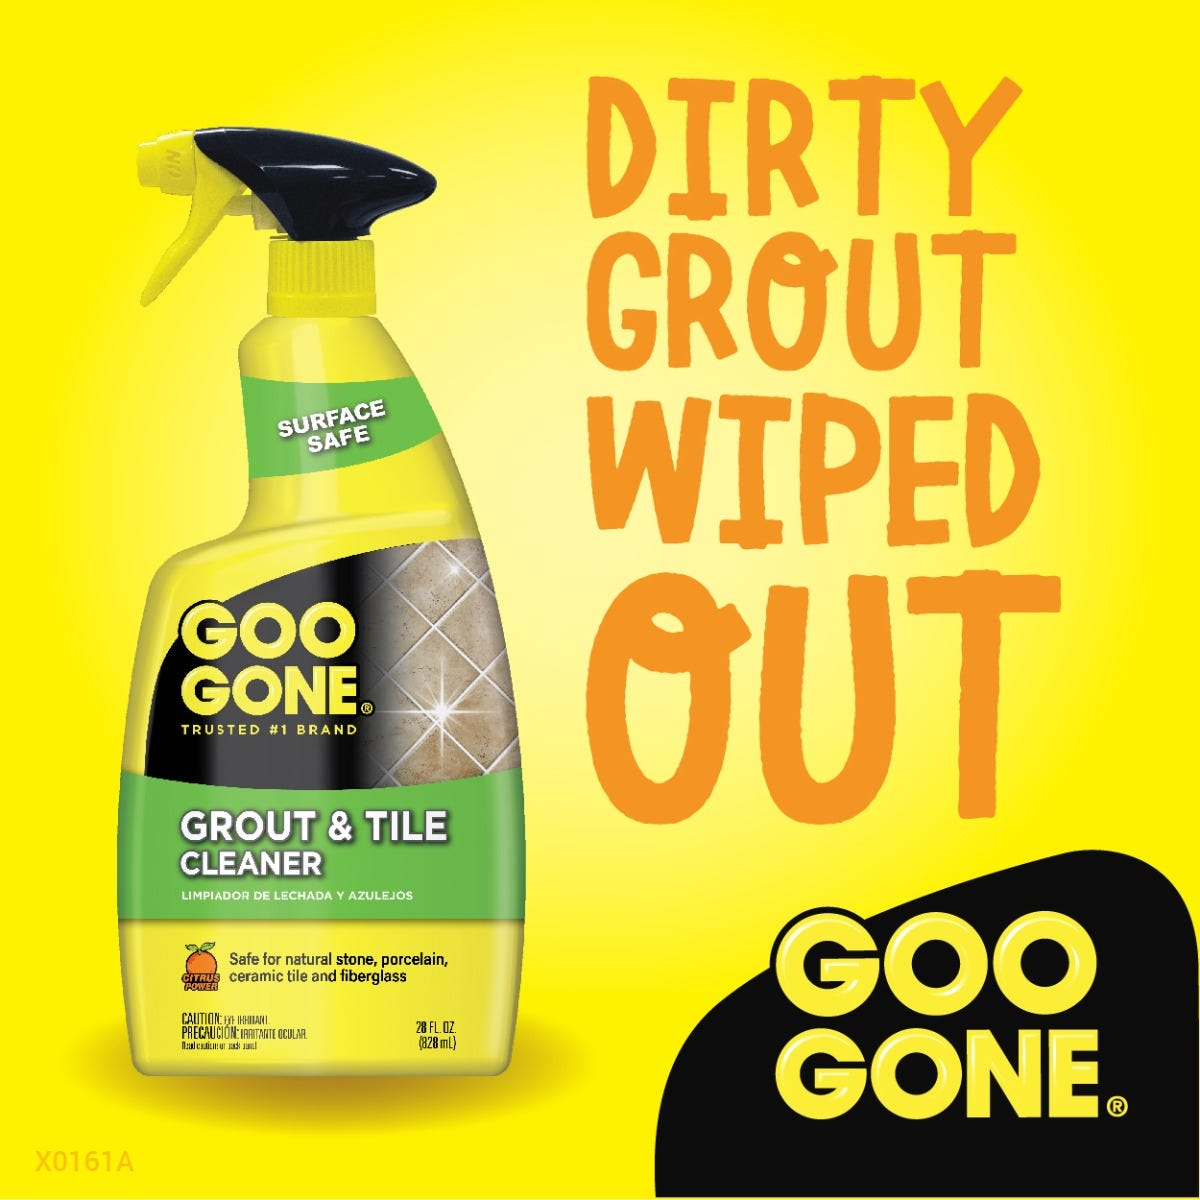 https://googone.com/media/catalog/product/g/r/grout_cleaner_benefit.jpg